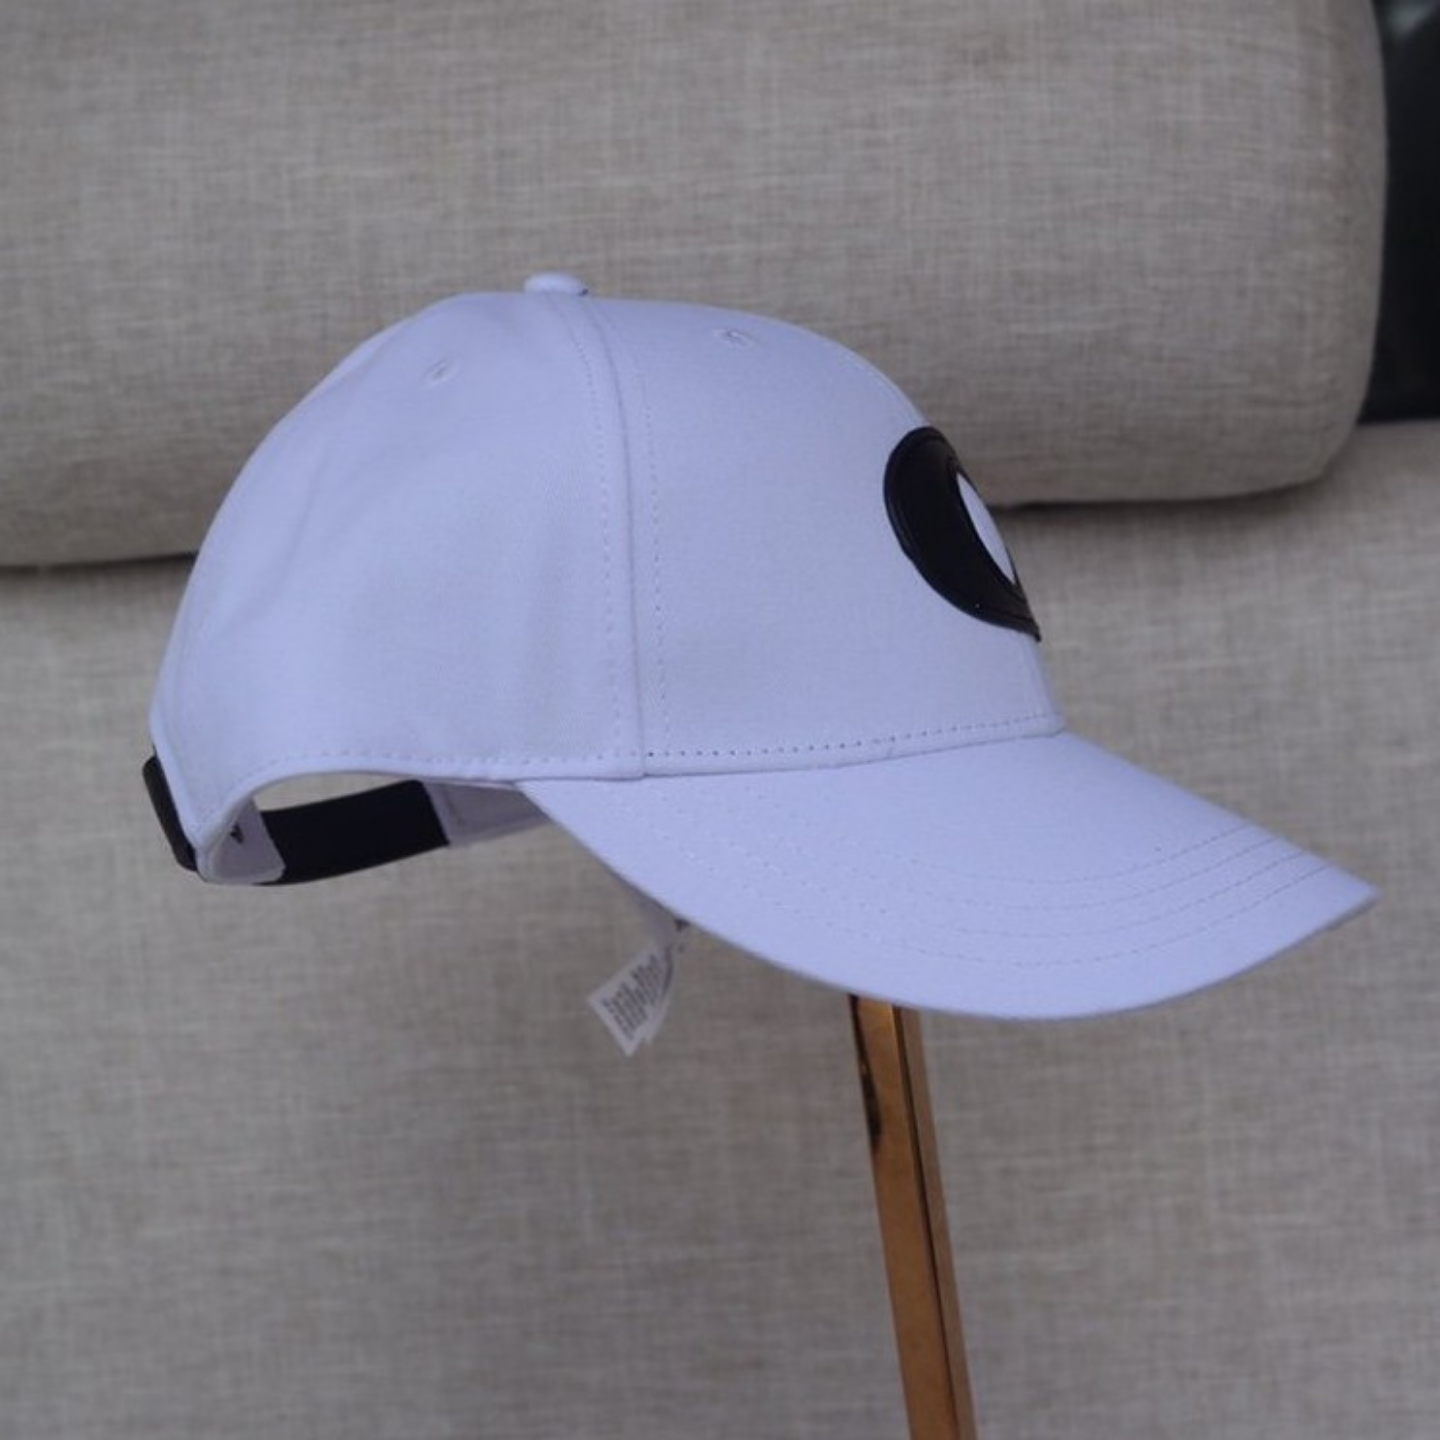 (SG COD) Coach hat baseball cap hat sports cap hip hop elastic cap men and women casual cap